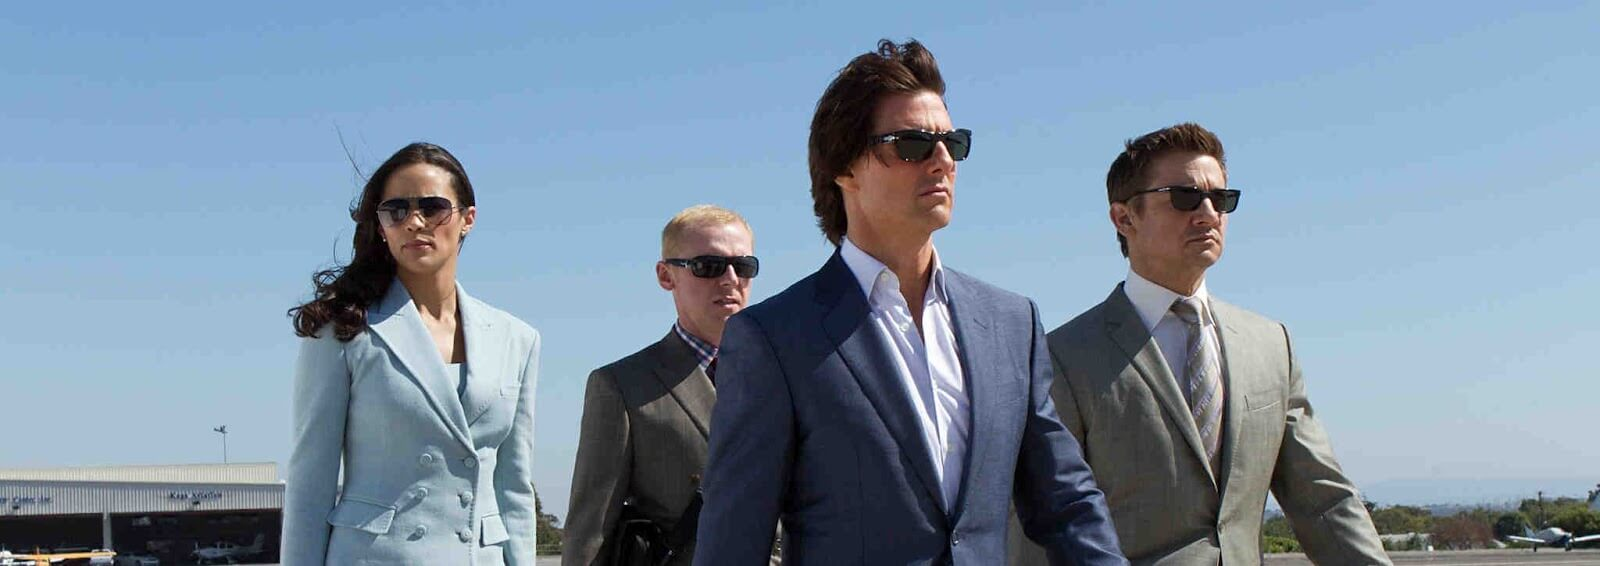 mission-impossible-ghost-protocol-2011-movoie